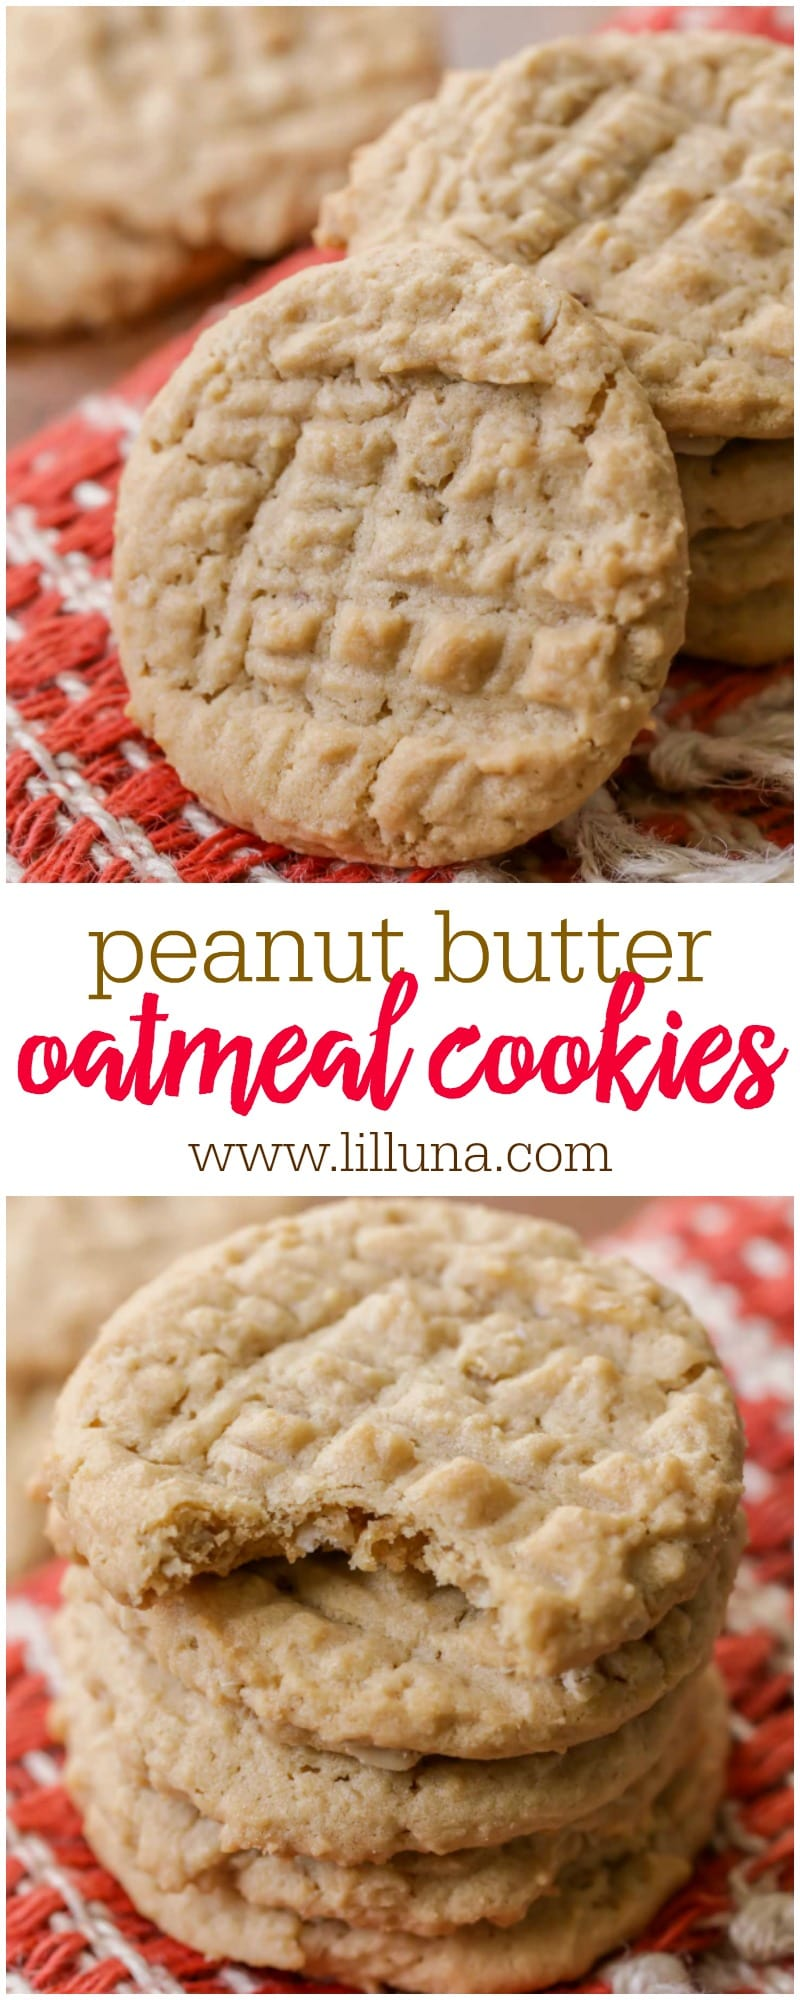 Two of everyone's favorite cookies in one - these Peanut Butter Oatmeal cookies are soft, chewy and so delicious!